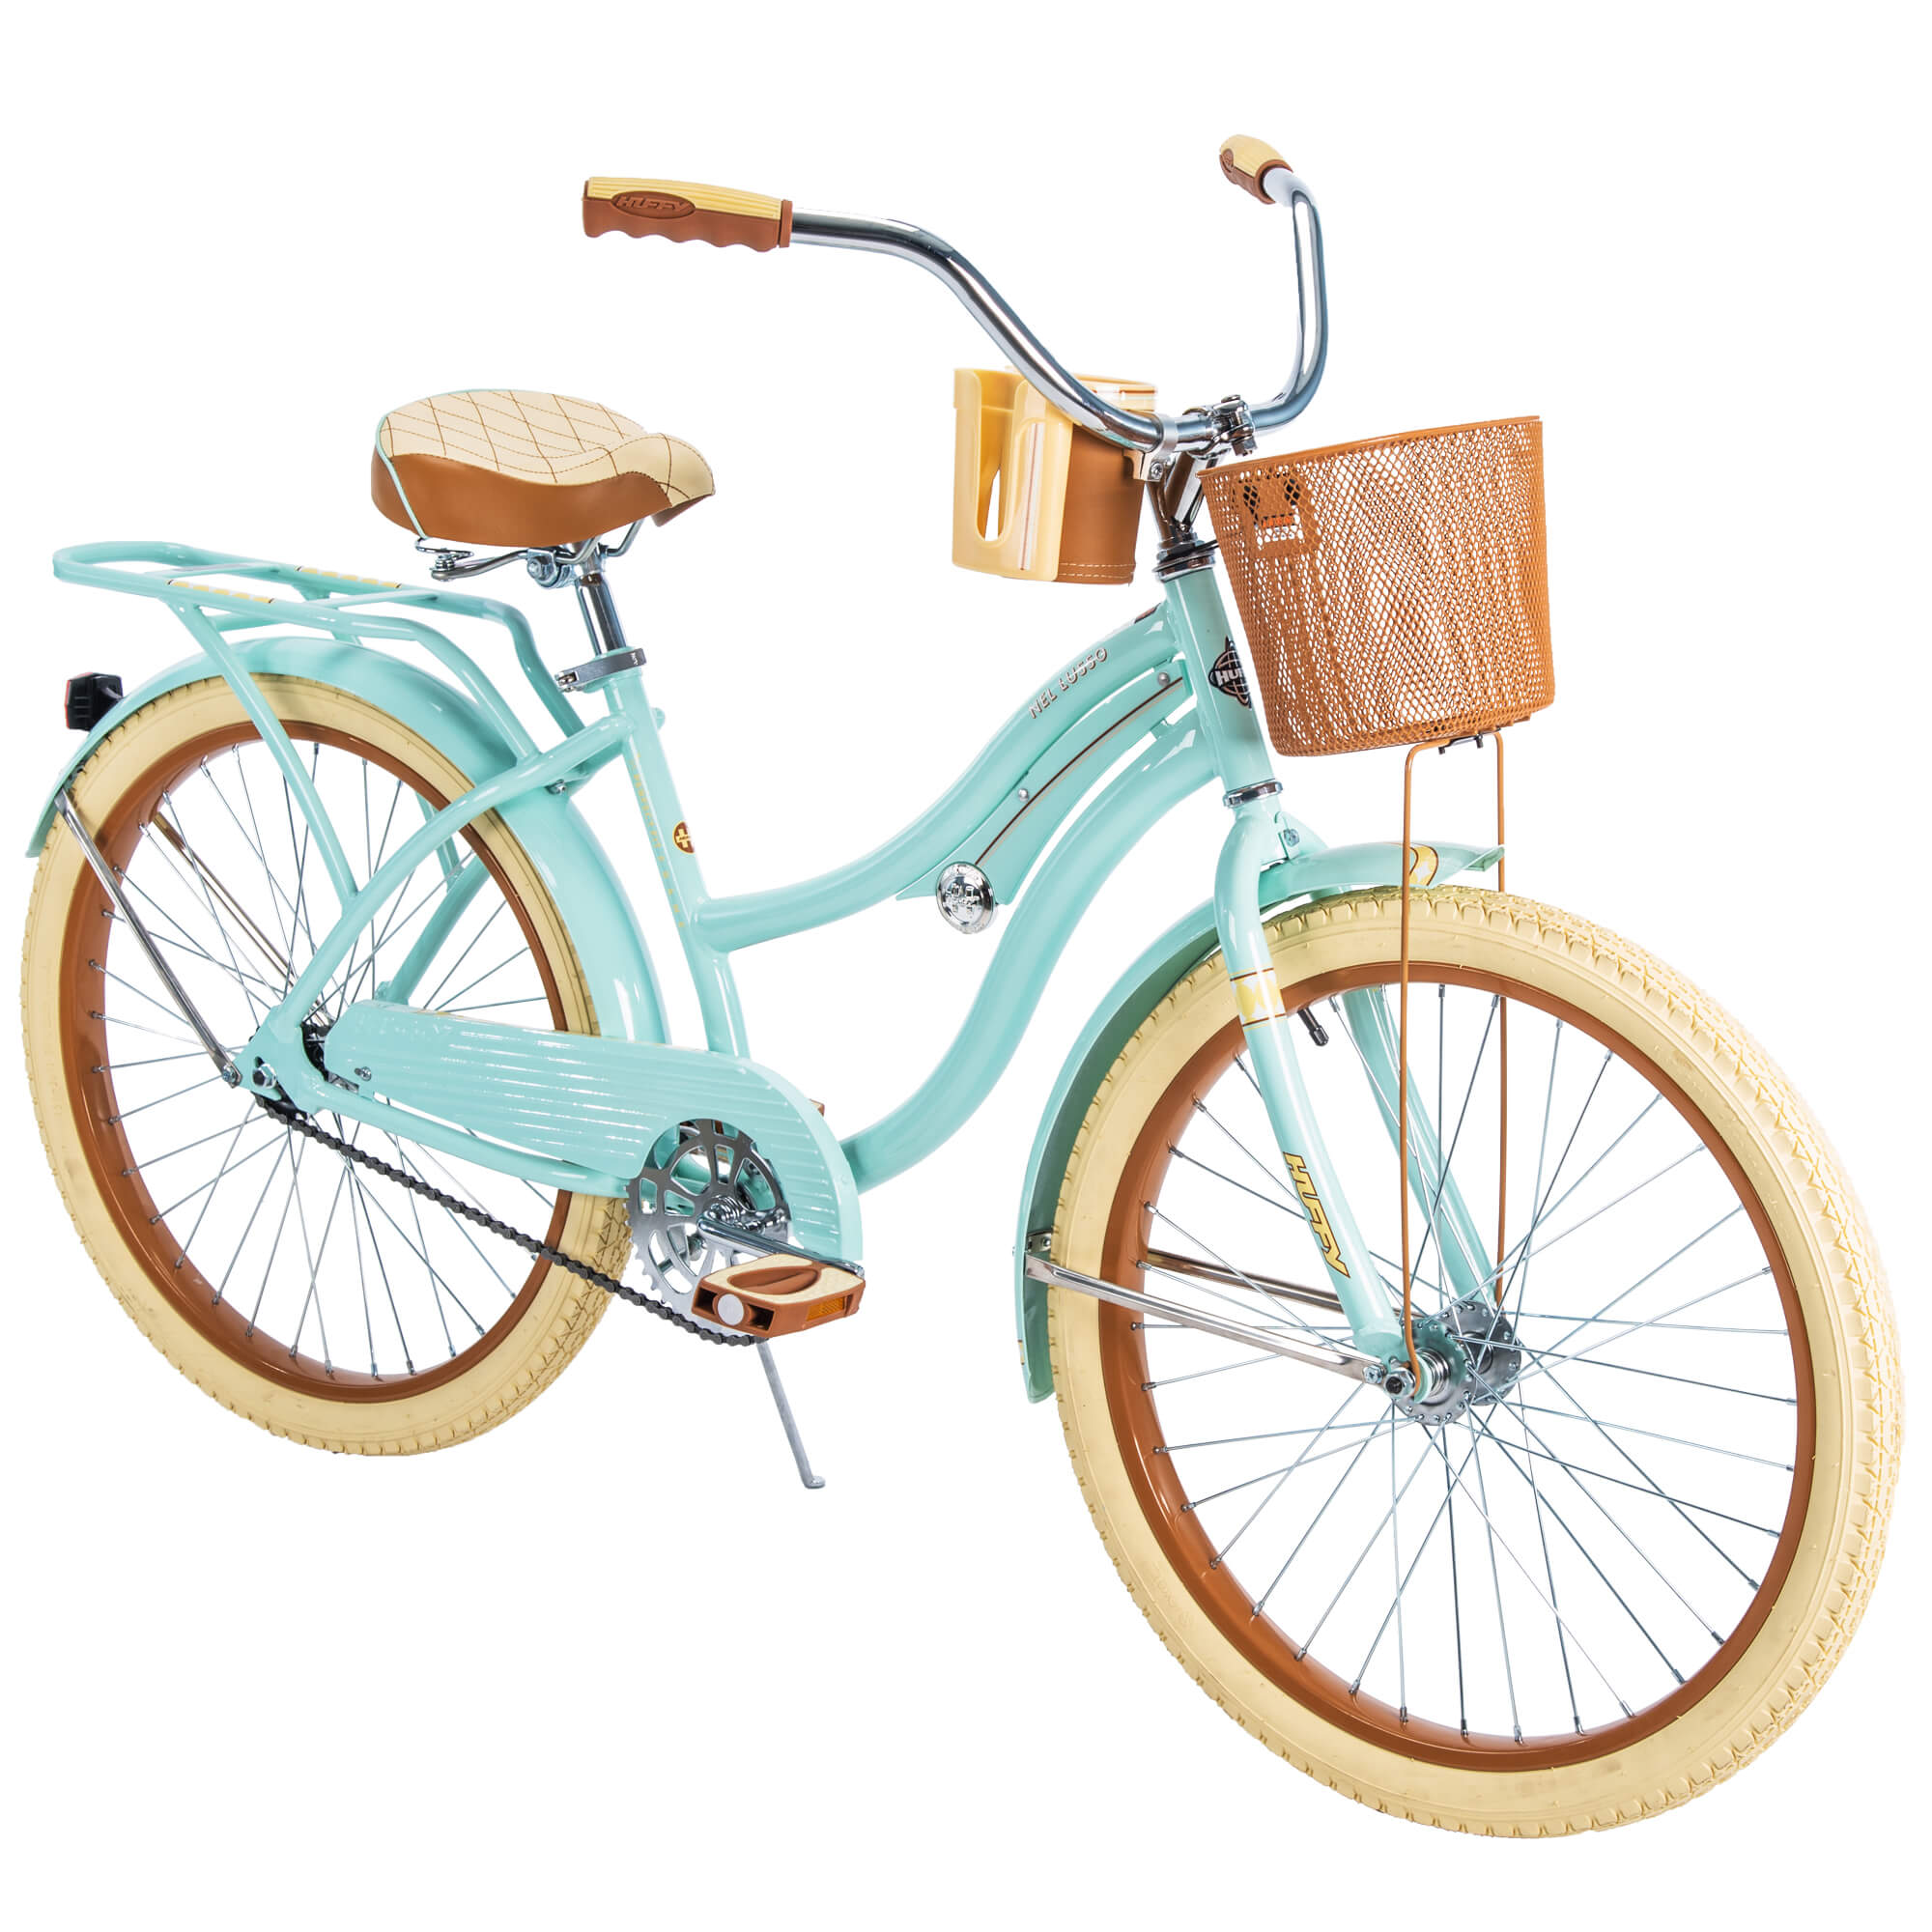 "Huffy 24"" Nel Lusso Girls' Cruiser Bike with Perfect Fit Frame, Mint Green"